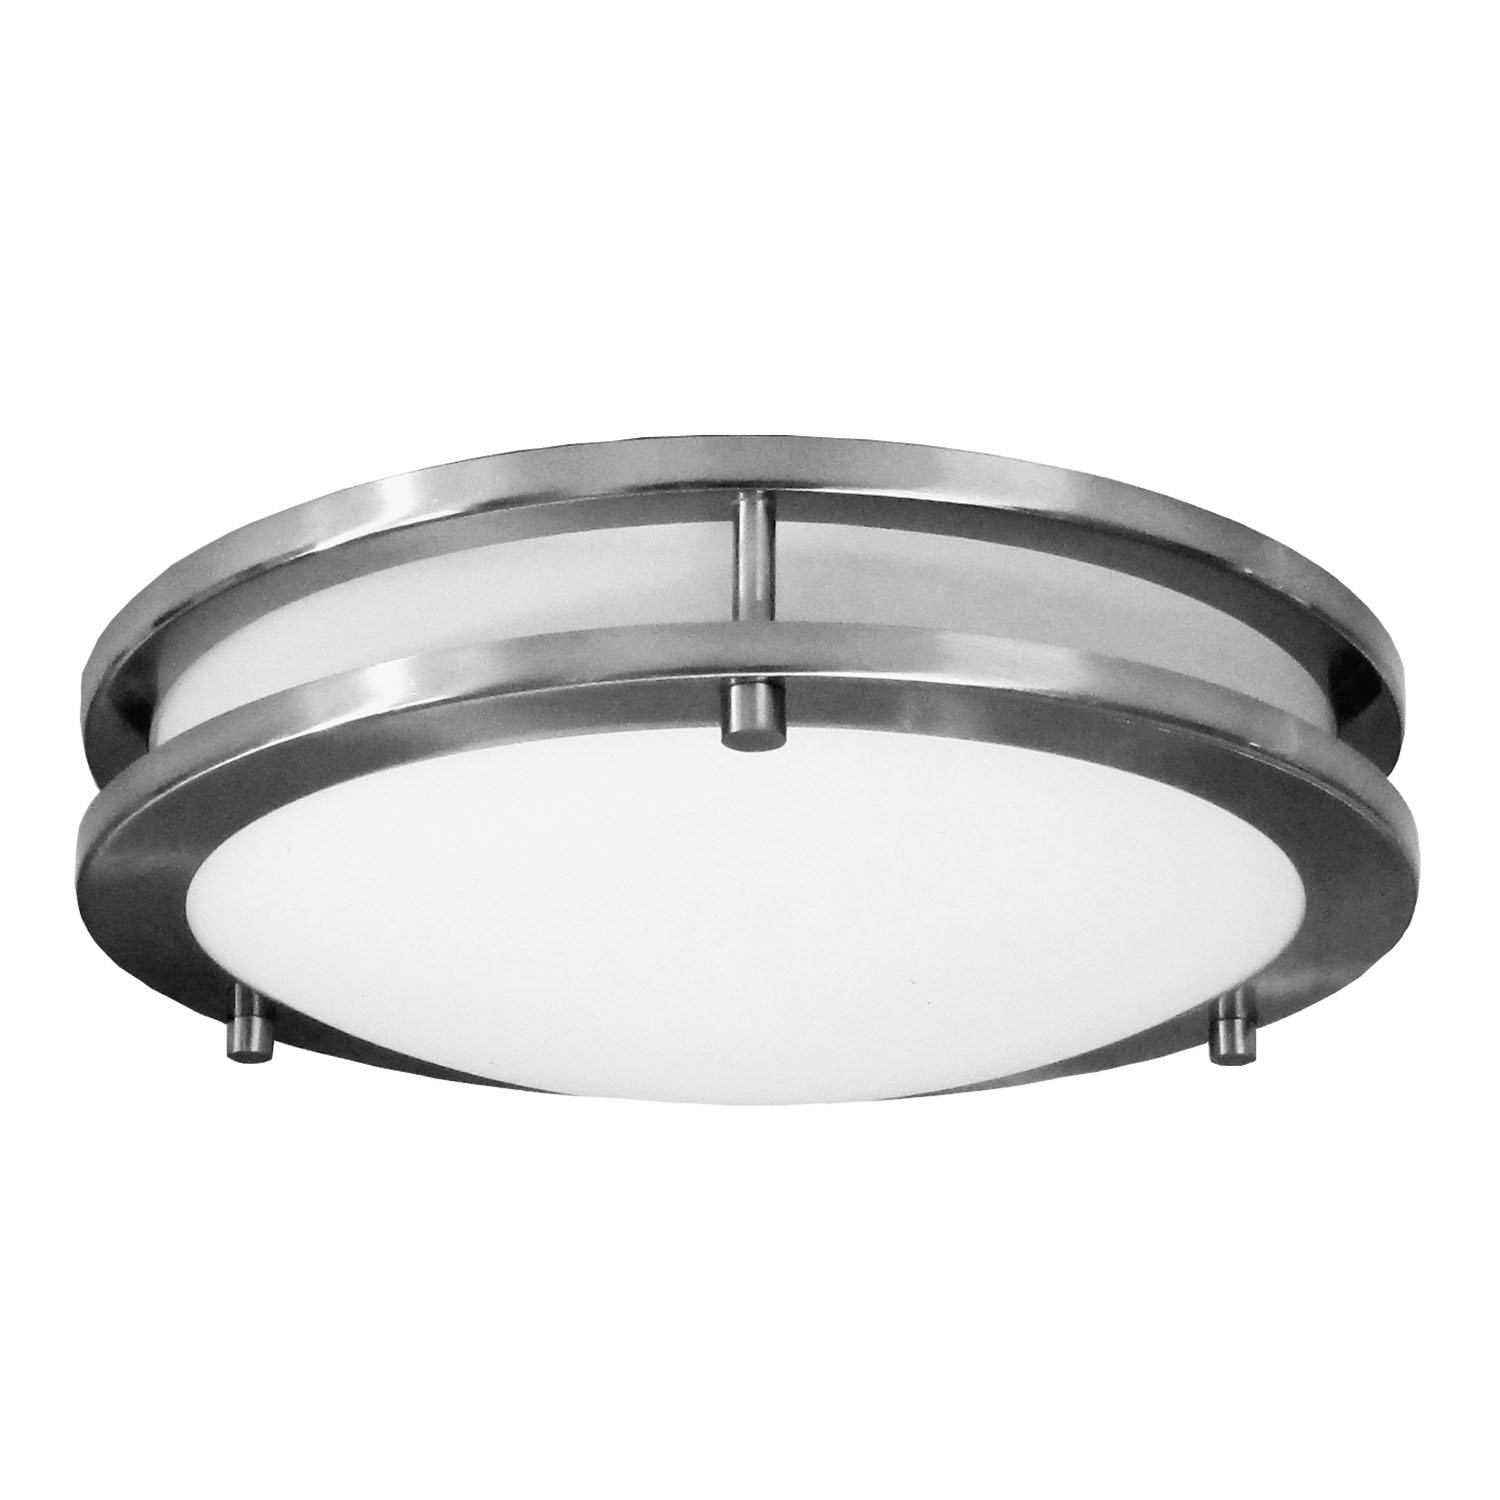 ring tivoli light ceiling led the book polished lighting chrome image